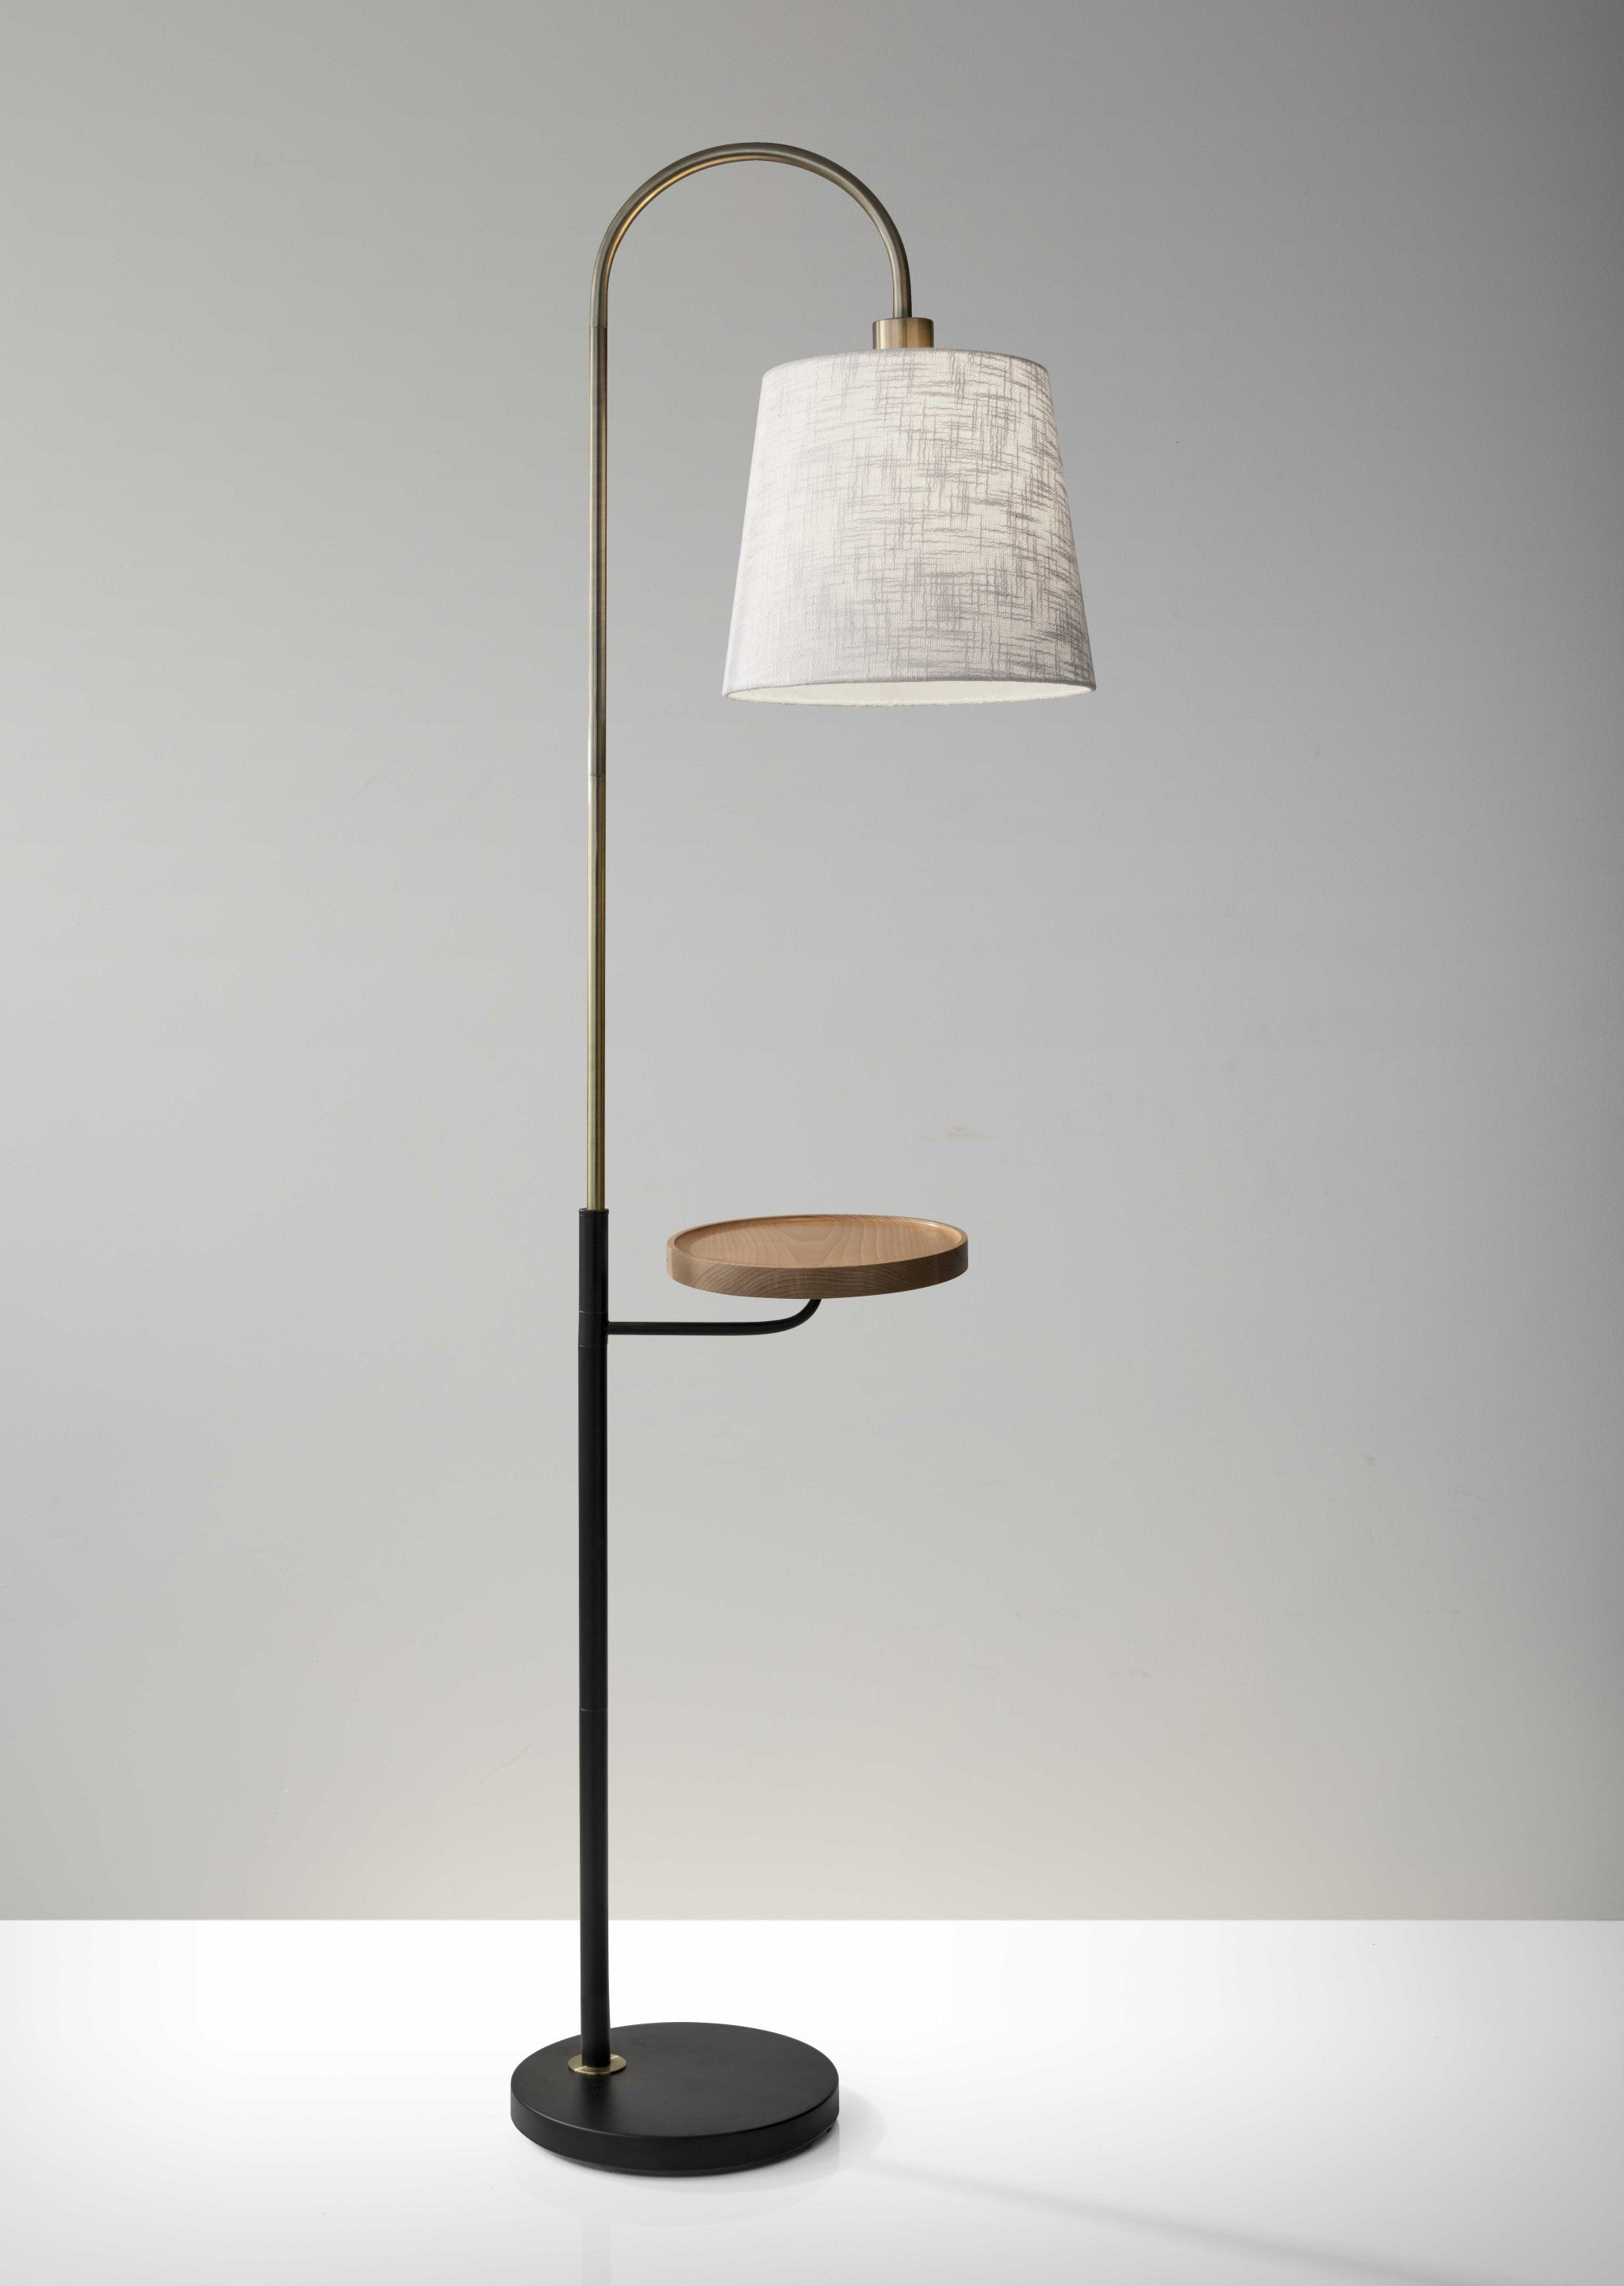 "11"" X 18.5"" X 65"" Brass Metal/Fabric Shelf Floor Lamp"